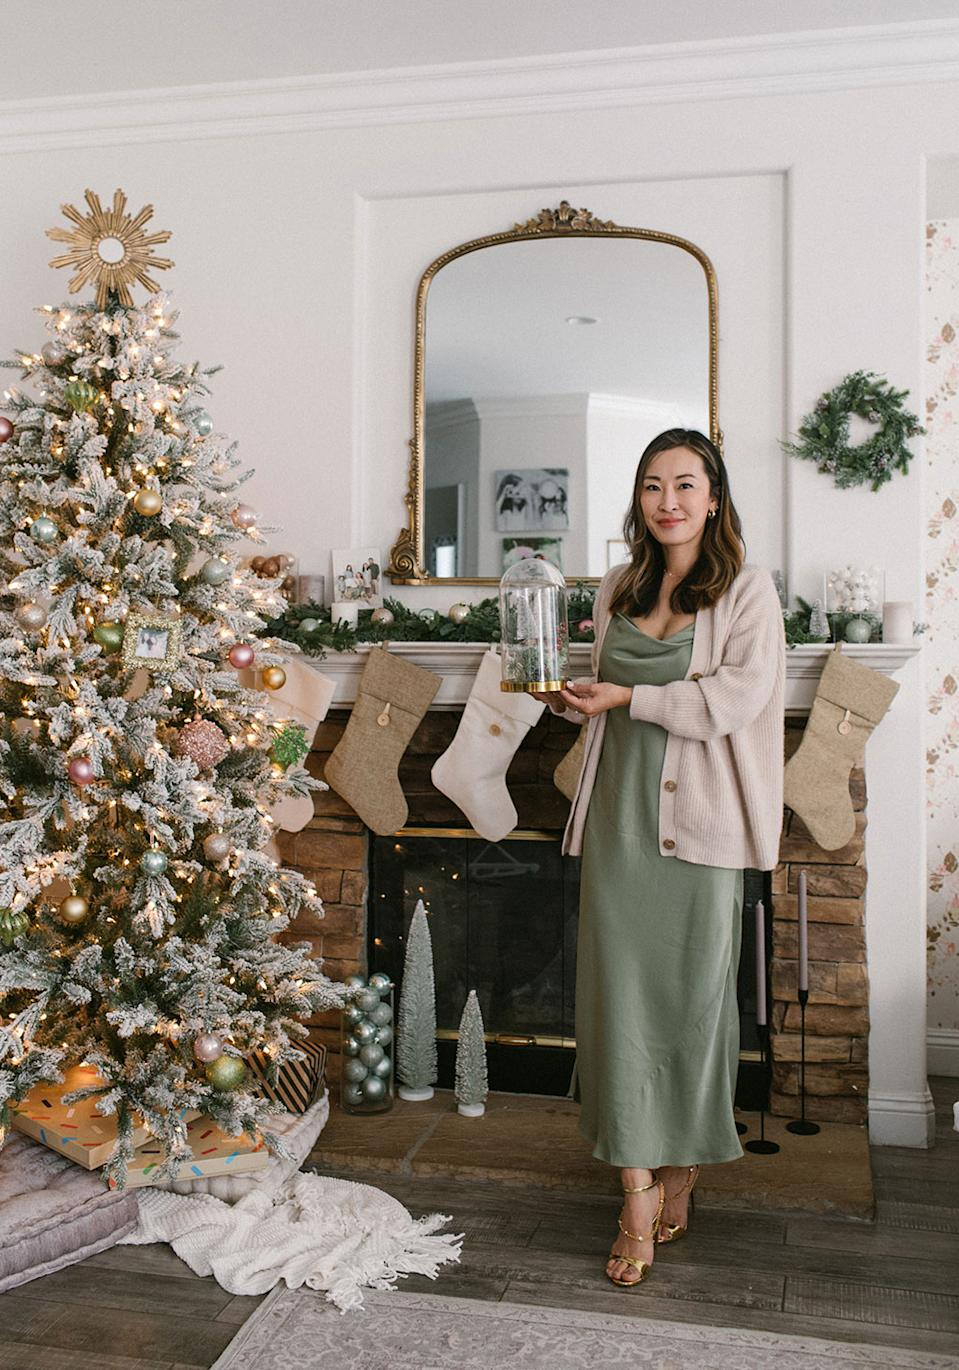 Angela Kim likes to get into the holiday spirit by decorating her family's home, listening to Christmas songs and wearing matching festive pajamas. (Photo courtesy of Angela Kim/Mommy Diary)